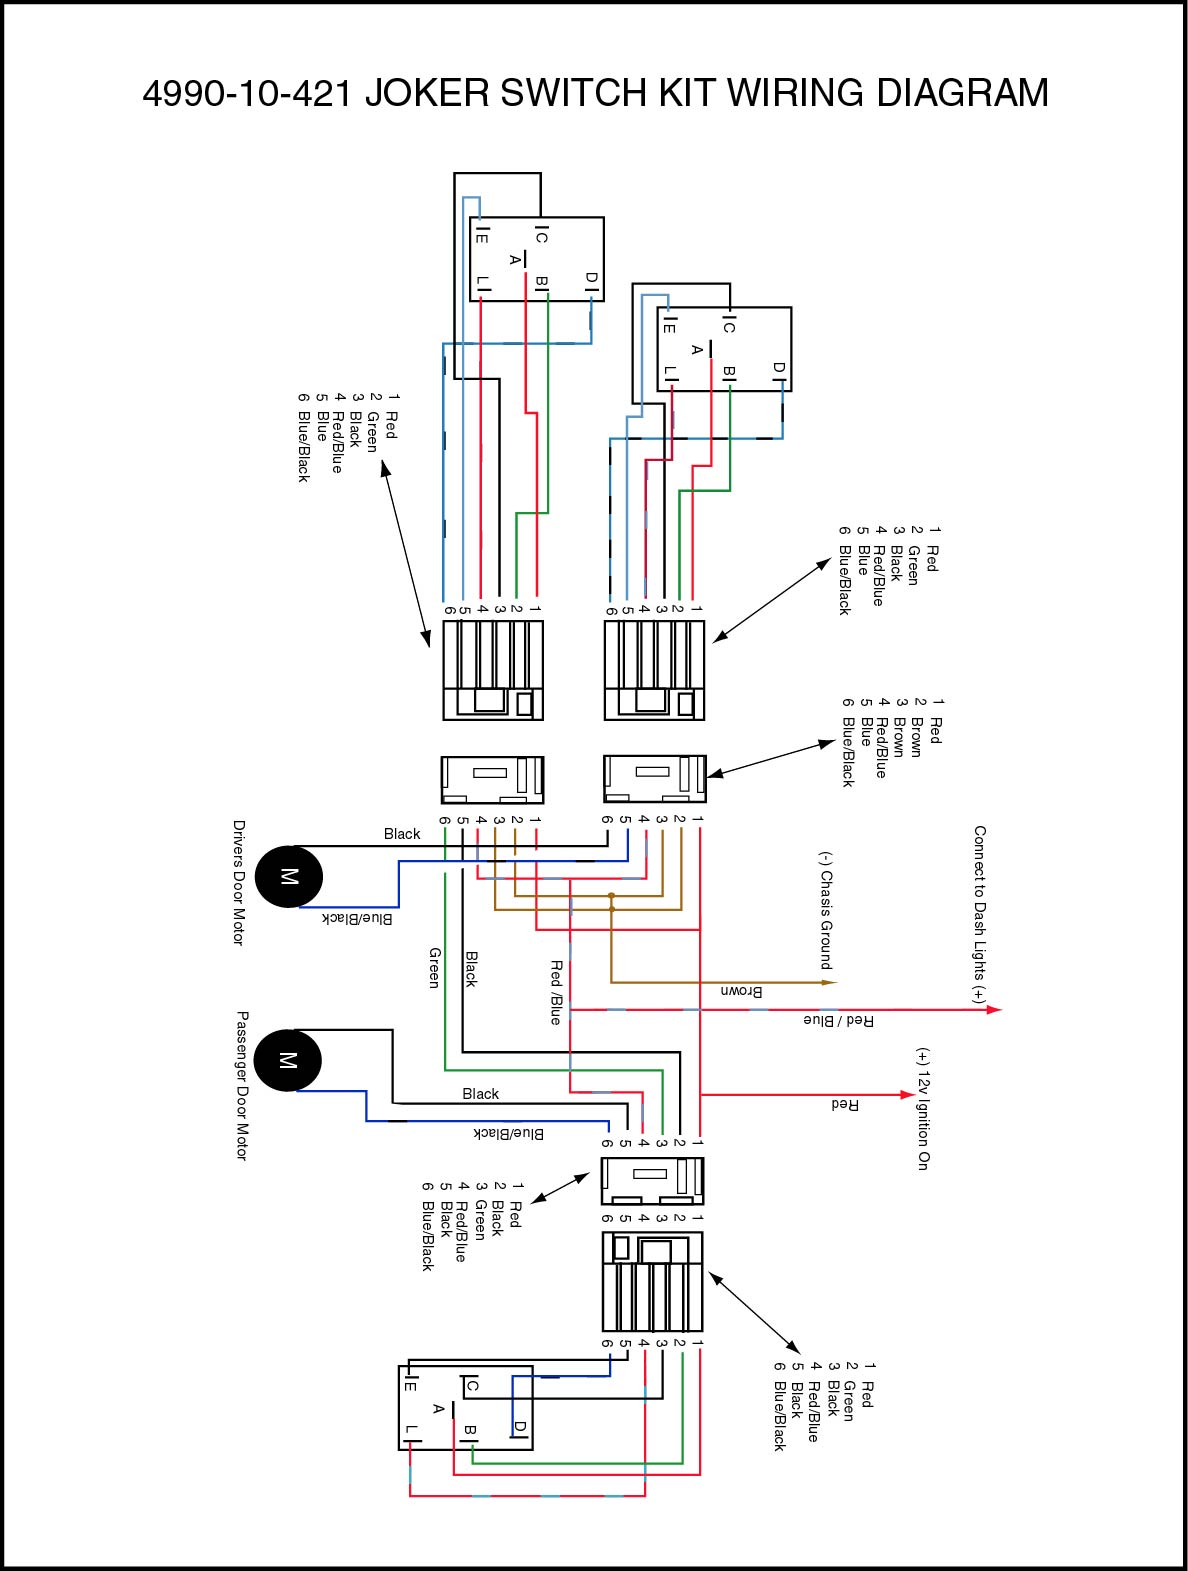 DIAGRAM] Gm Window Switch Wiring Diagram FULL Version HD Quality Wiring  Diagram - DUCTDIAGRAM.EYEPOWER.ITductdiagram.eyepower.it